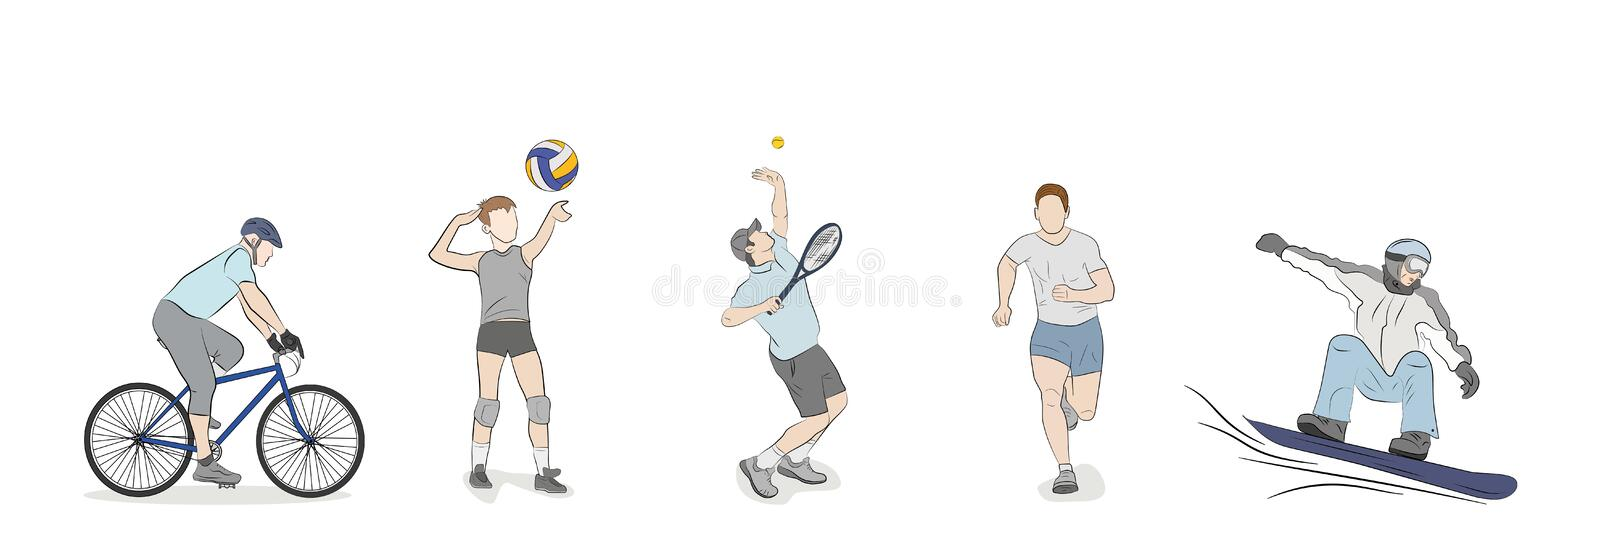 A set of people are engaged in different kinds of sports. royalty free illustration